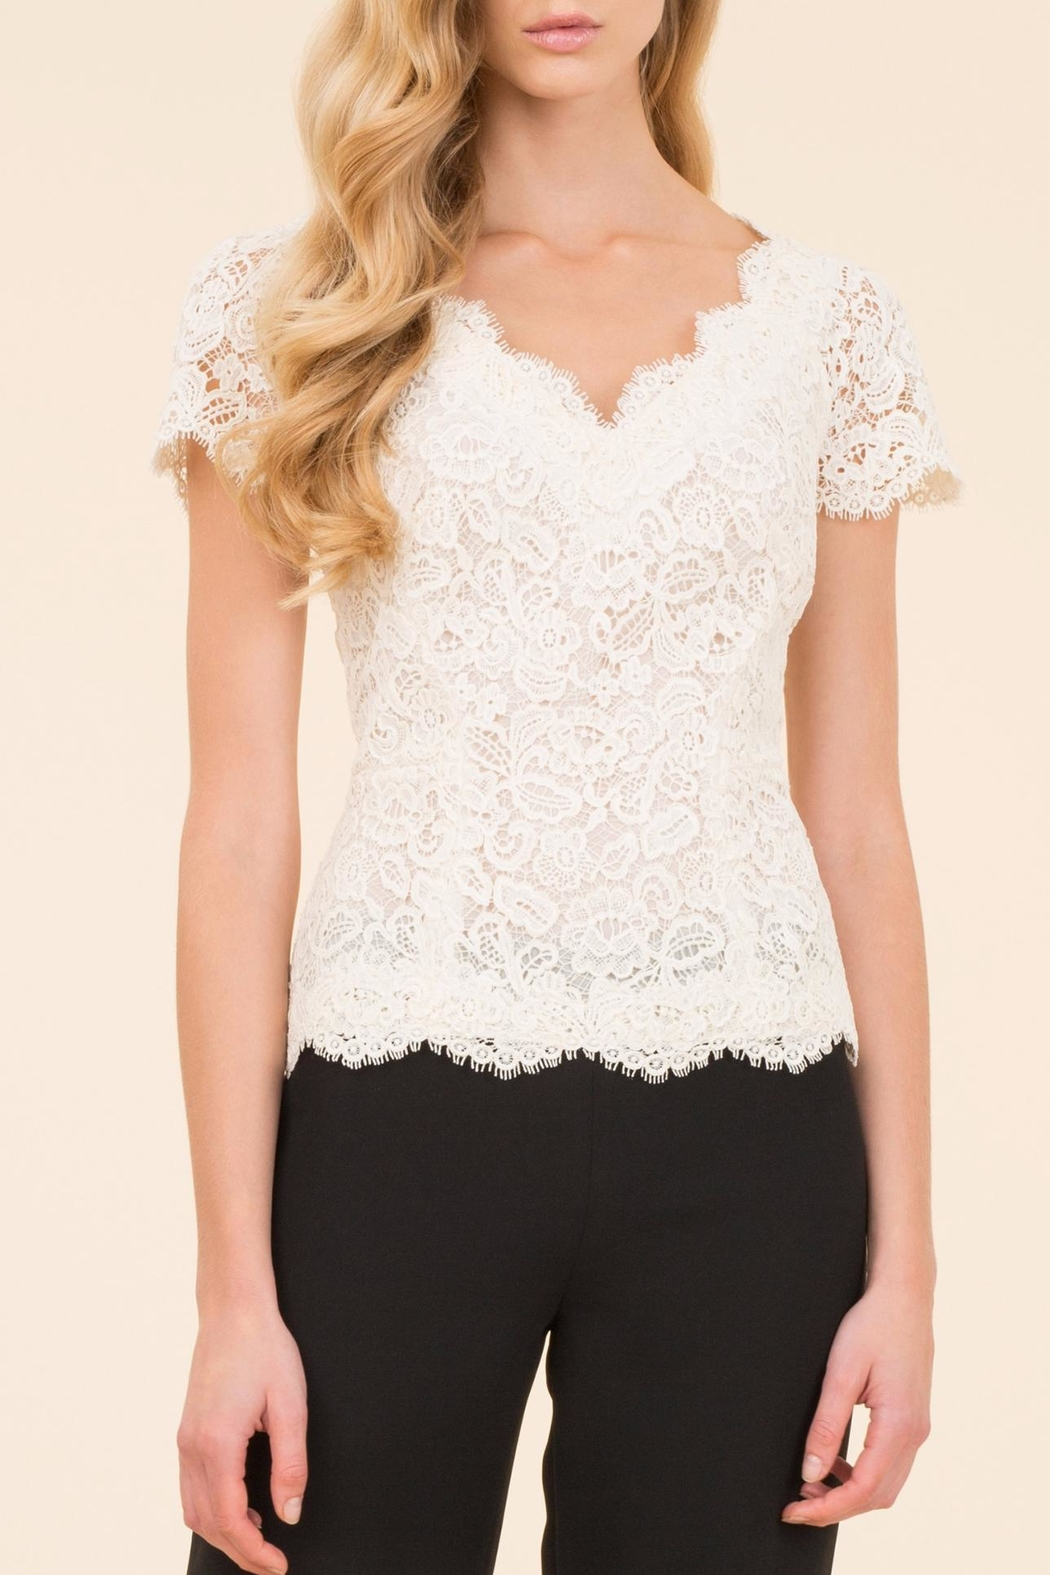 Luisa Spagnoli Cream Lace Top - Main Image